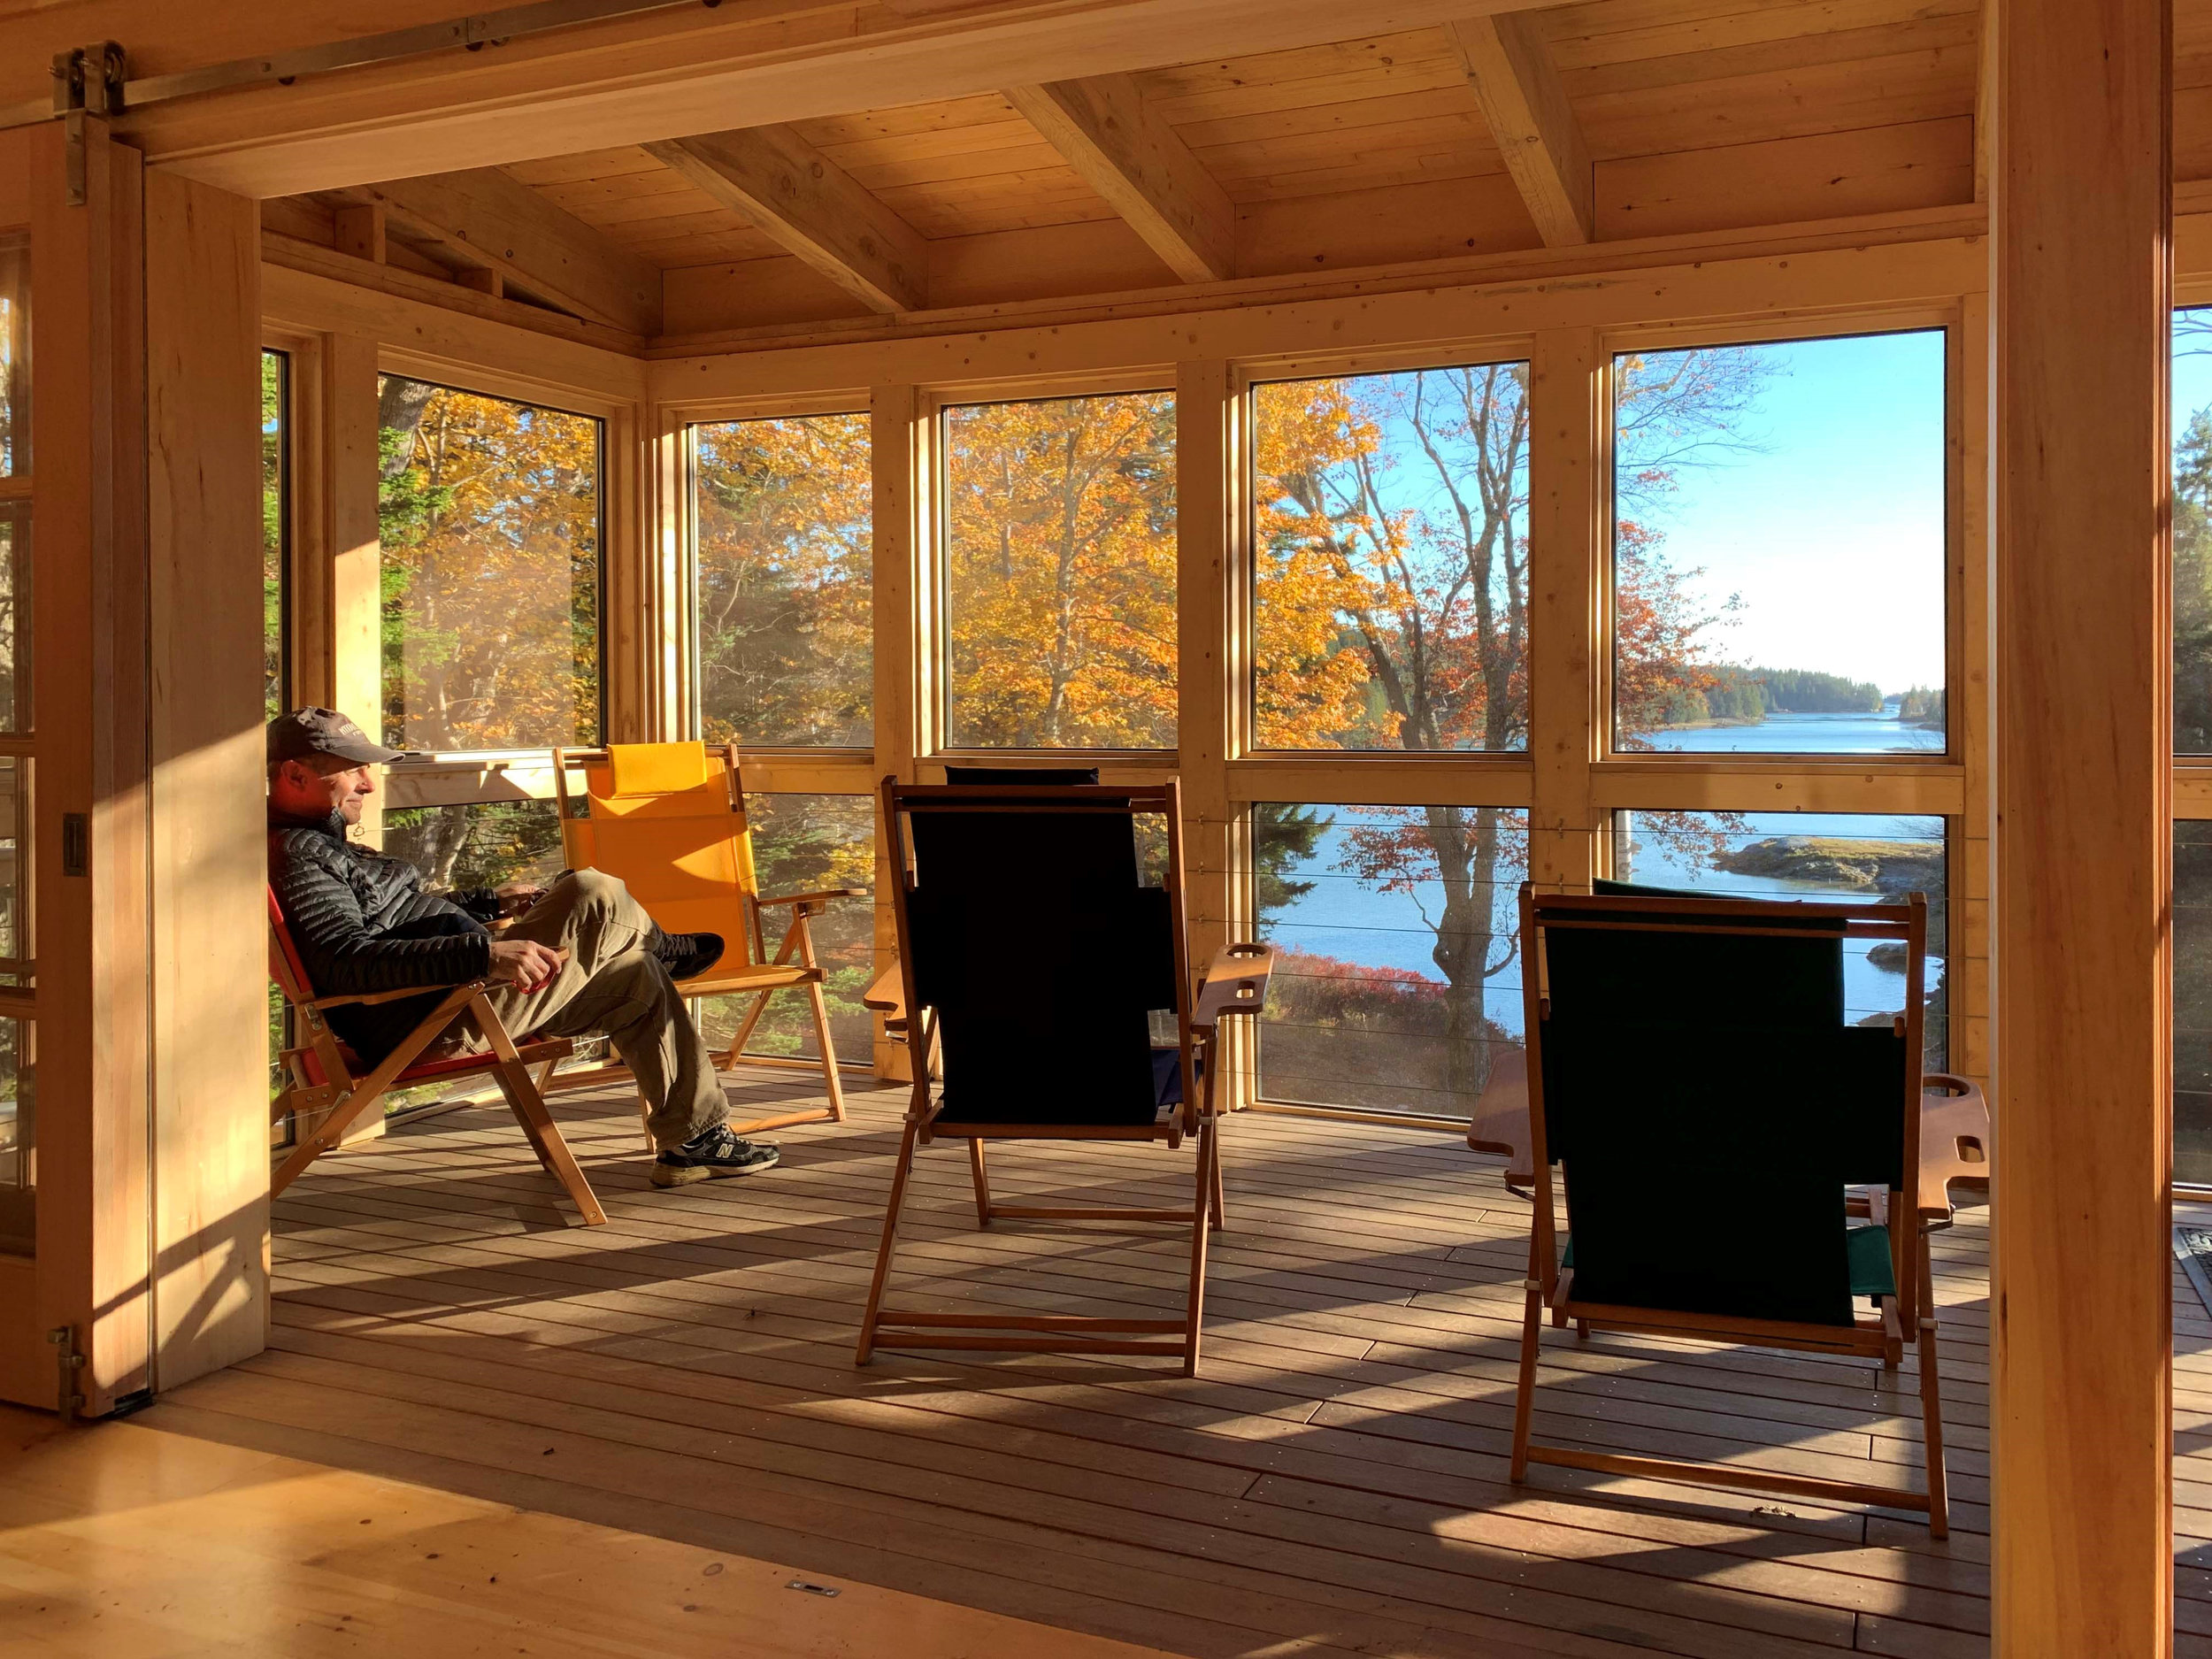 pho-int-cove_camp_porch_DWA_view-150ppi-27x20.jpg